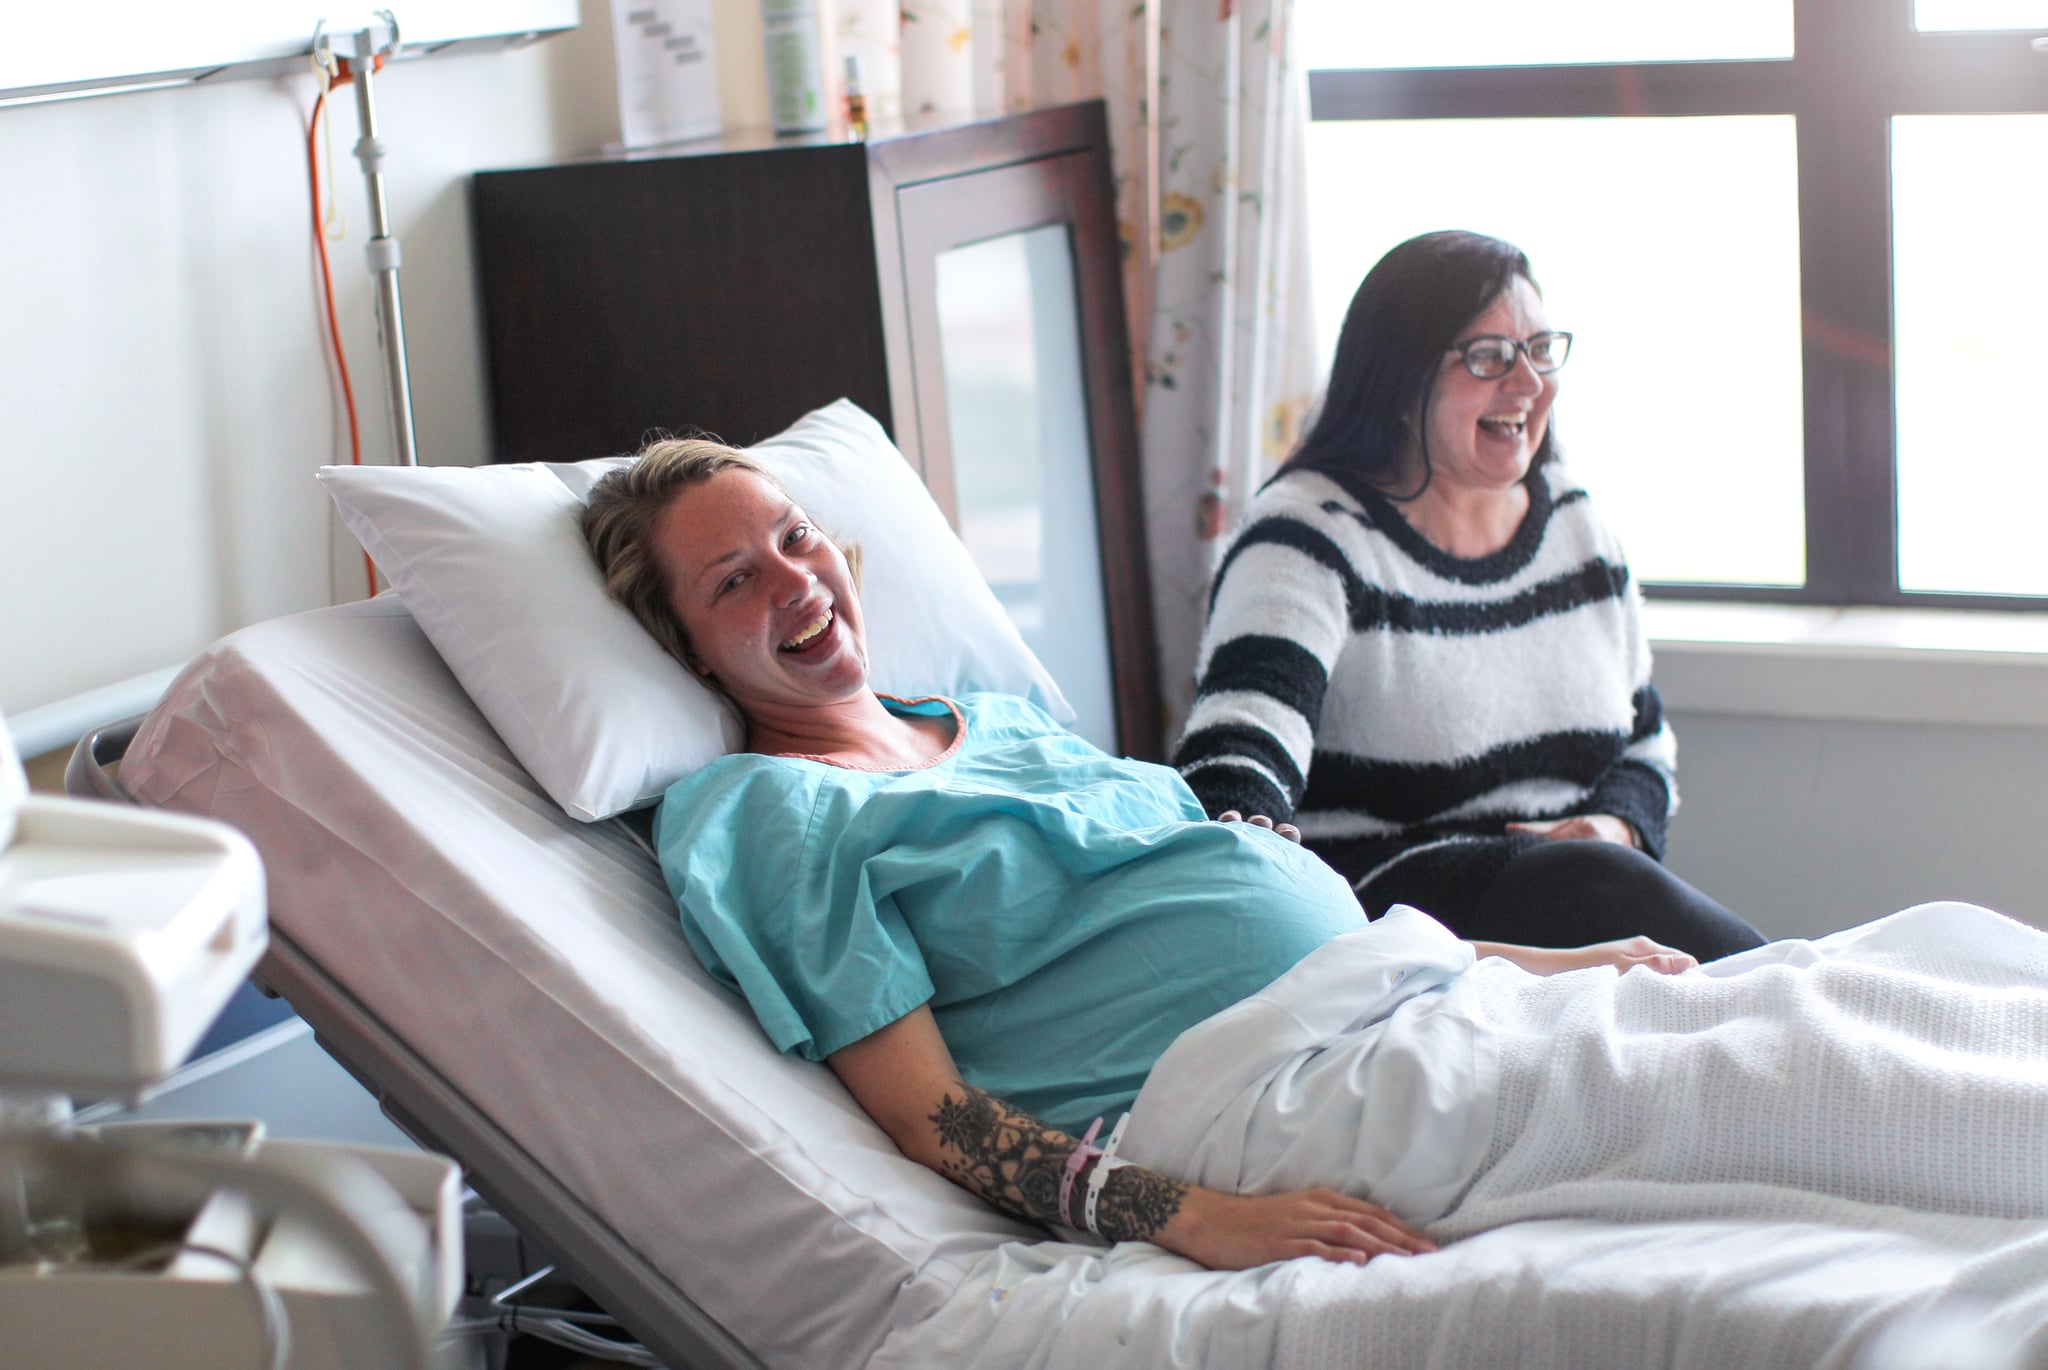 a Mother spends time with her pregnant daughter in hospital before she has a caesarean section.